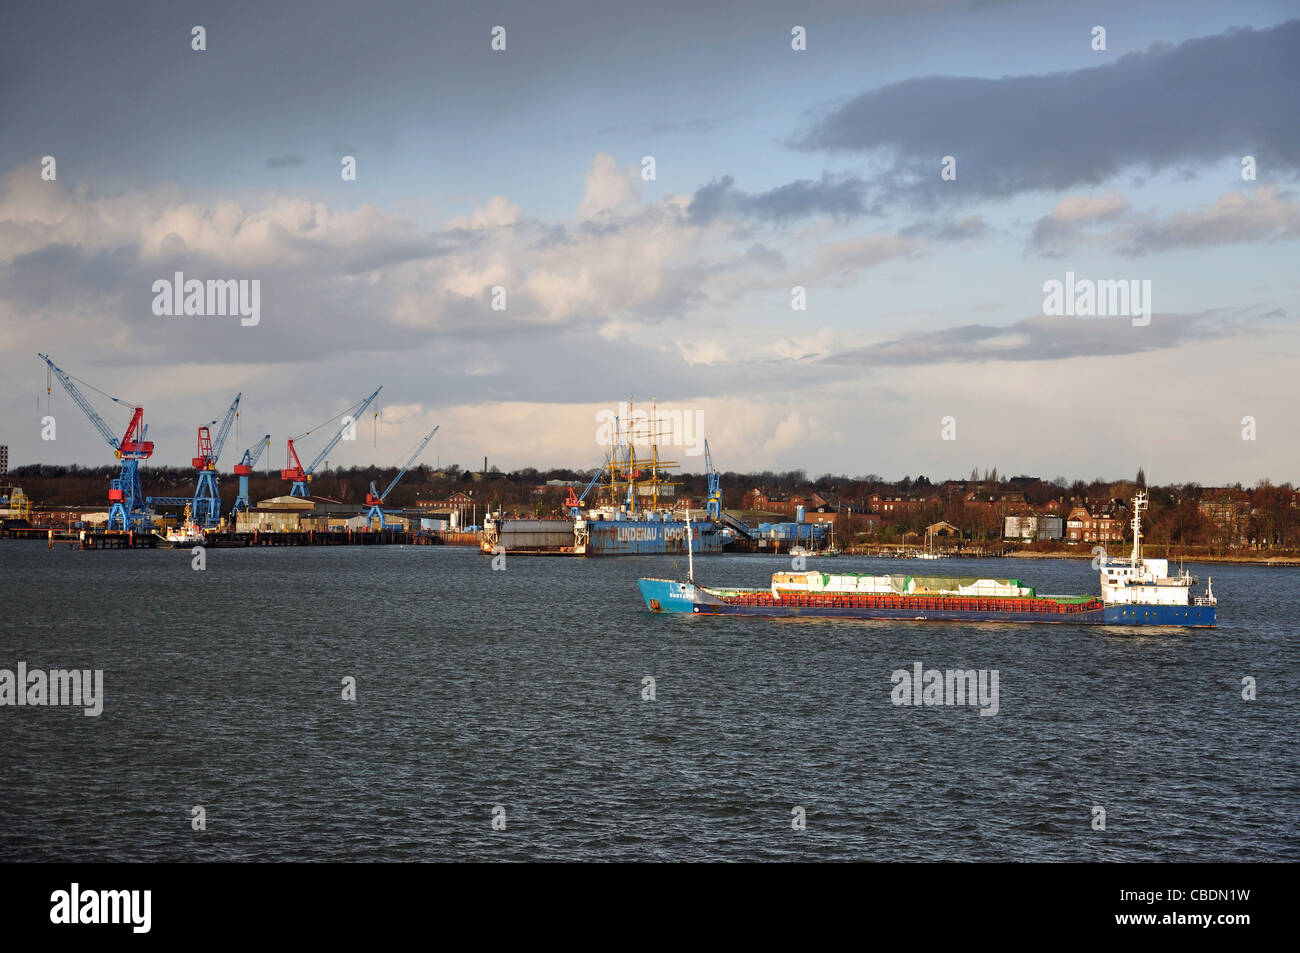 Ship approaching entrance to Kiel Canal, Schleswig-Holstein, Federal Republic of Germany - Stock Image